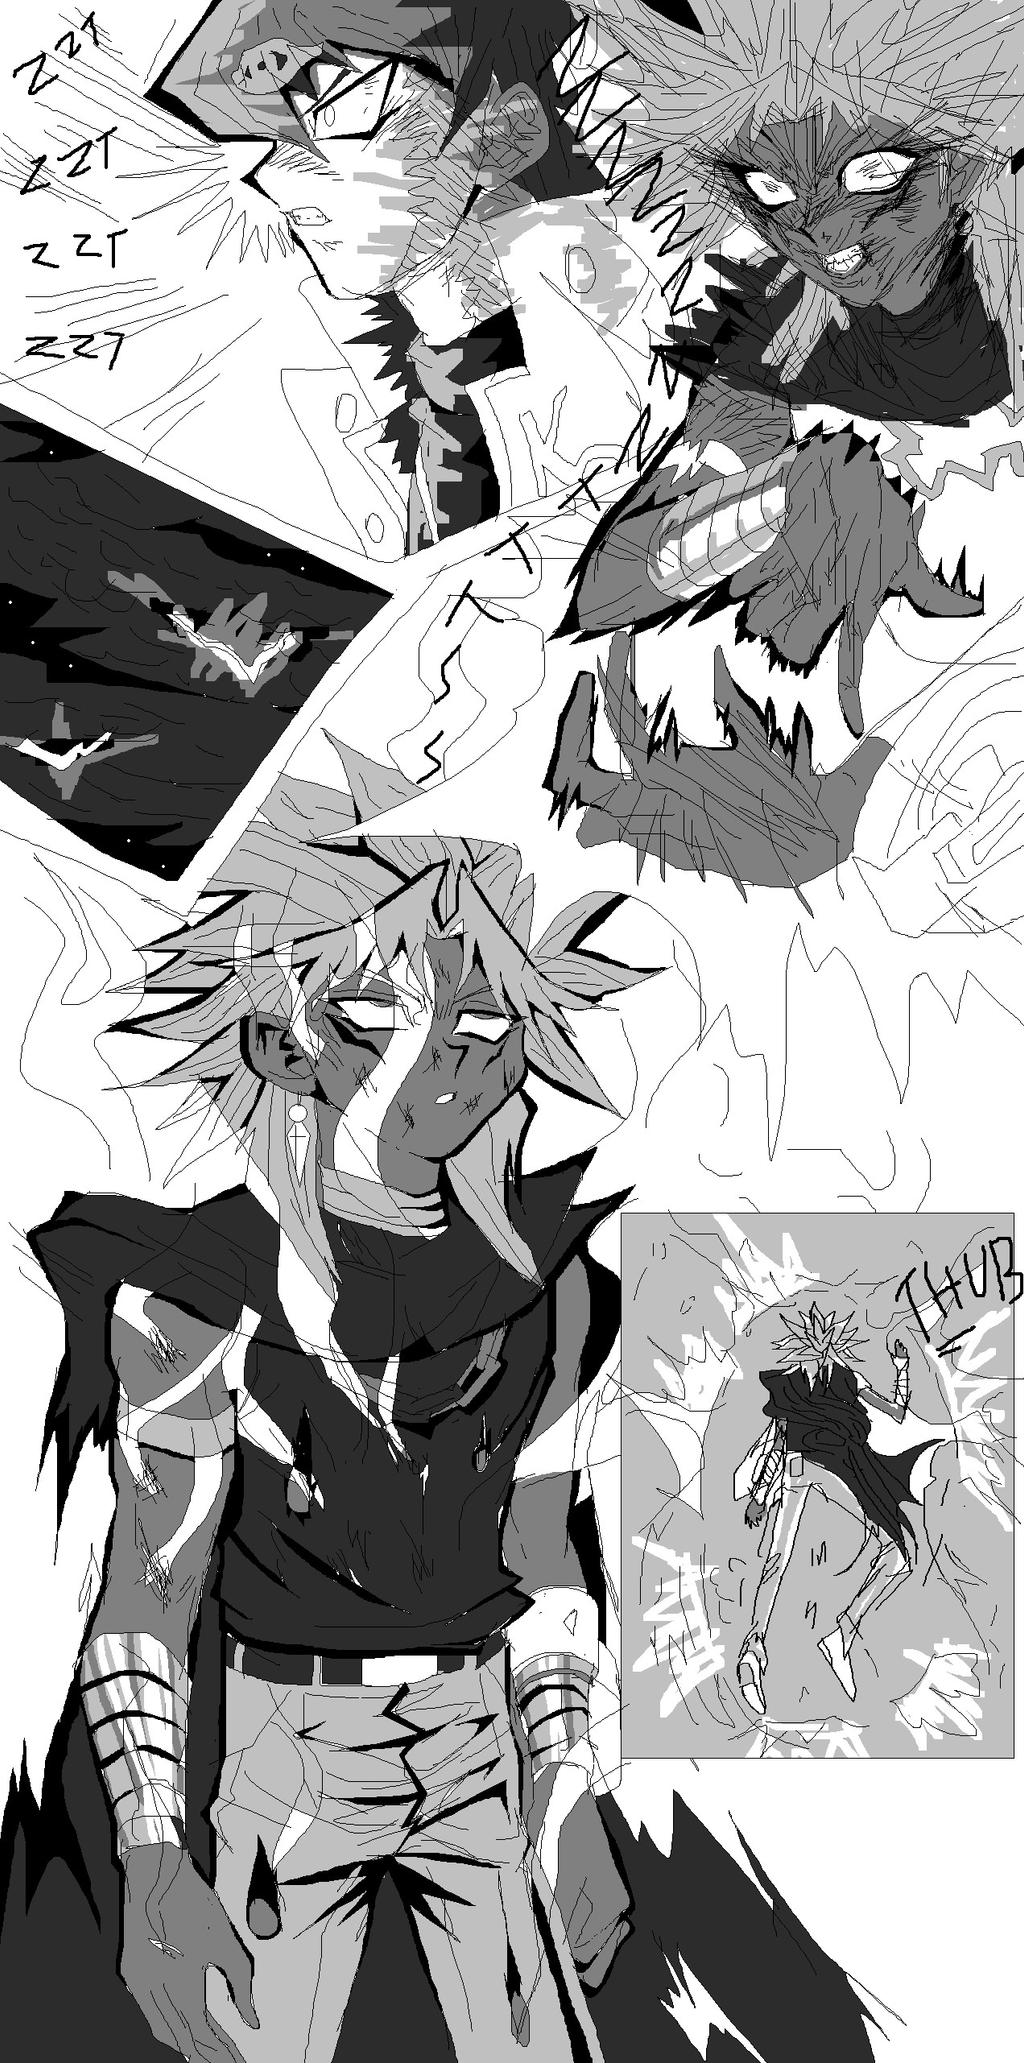 Yu-Gi-Oh! bonds beyond time II Chapter three: tale of seto Chapter_4_page_16_i_just_killed_marik____hurray__by_mrawesome45-d7392p9